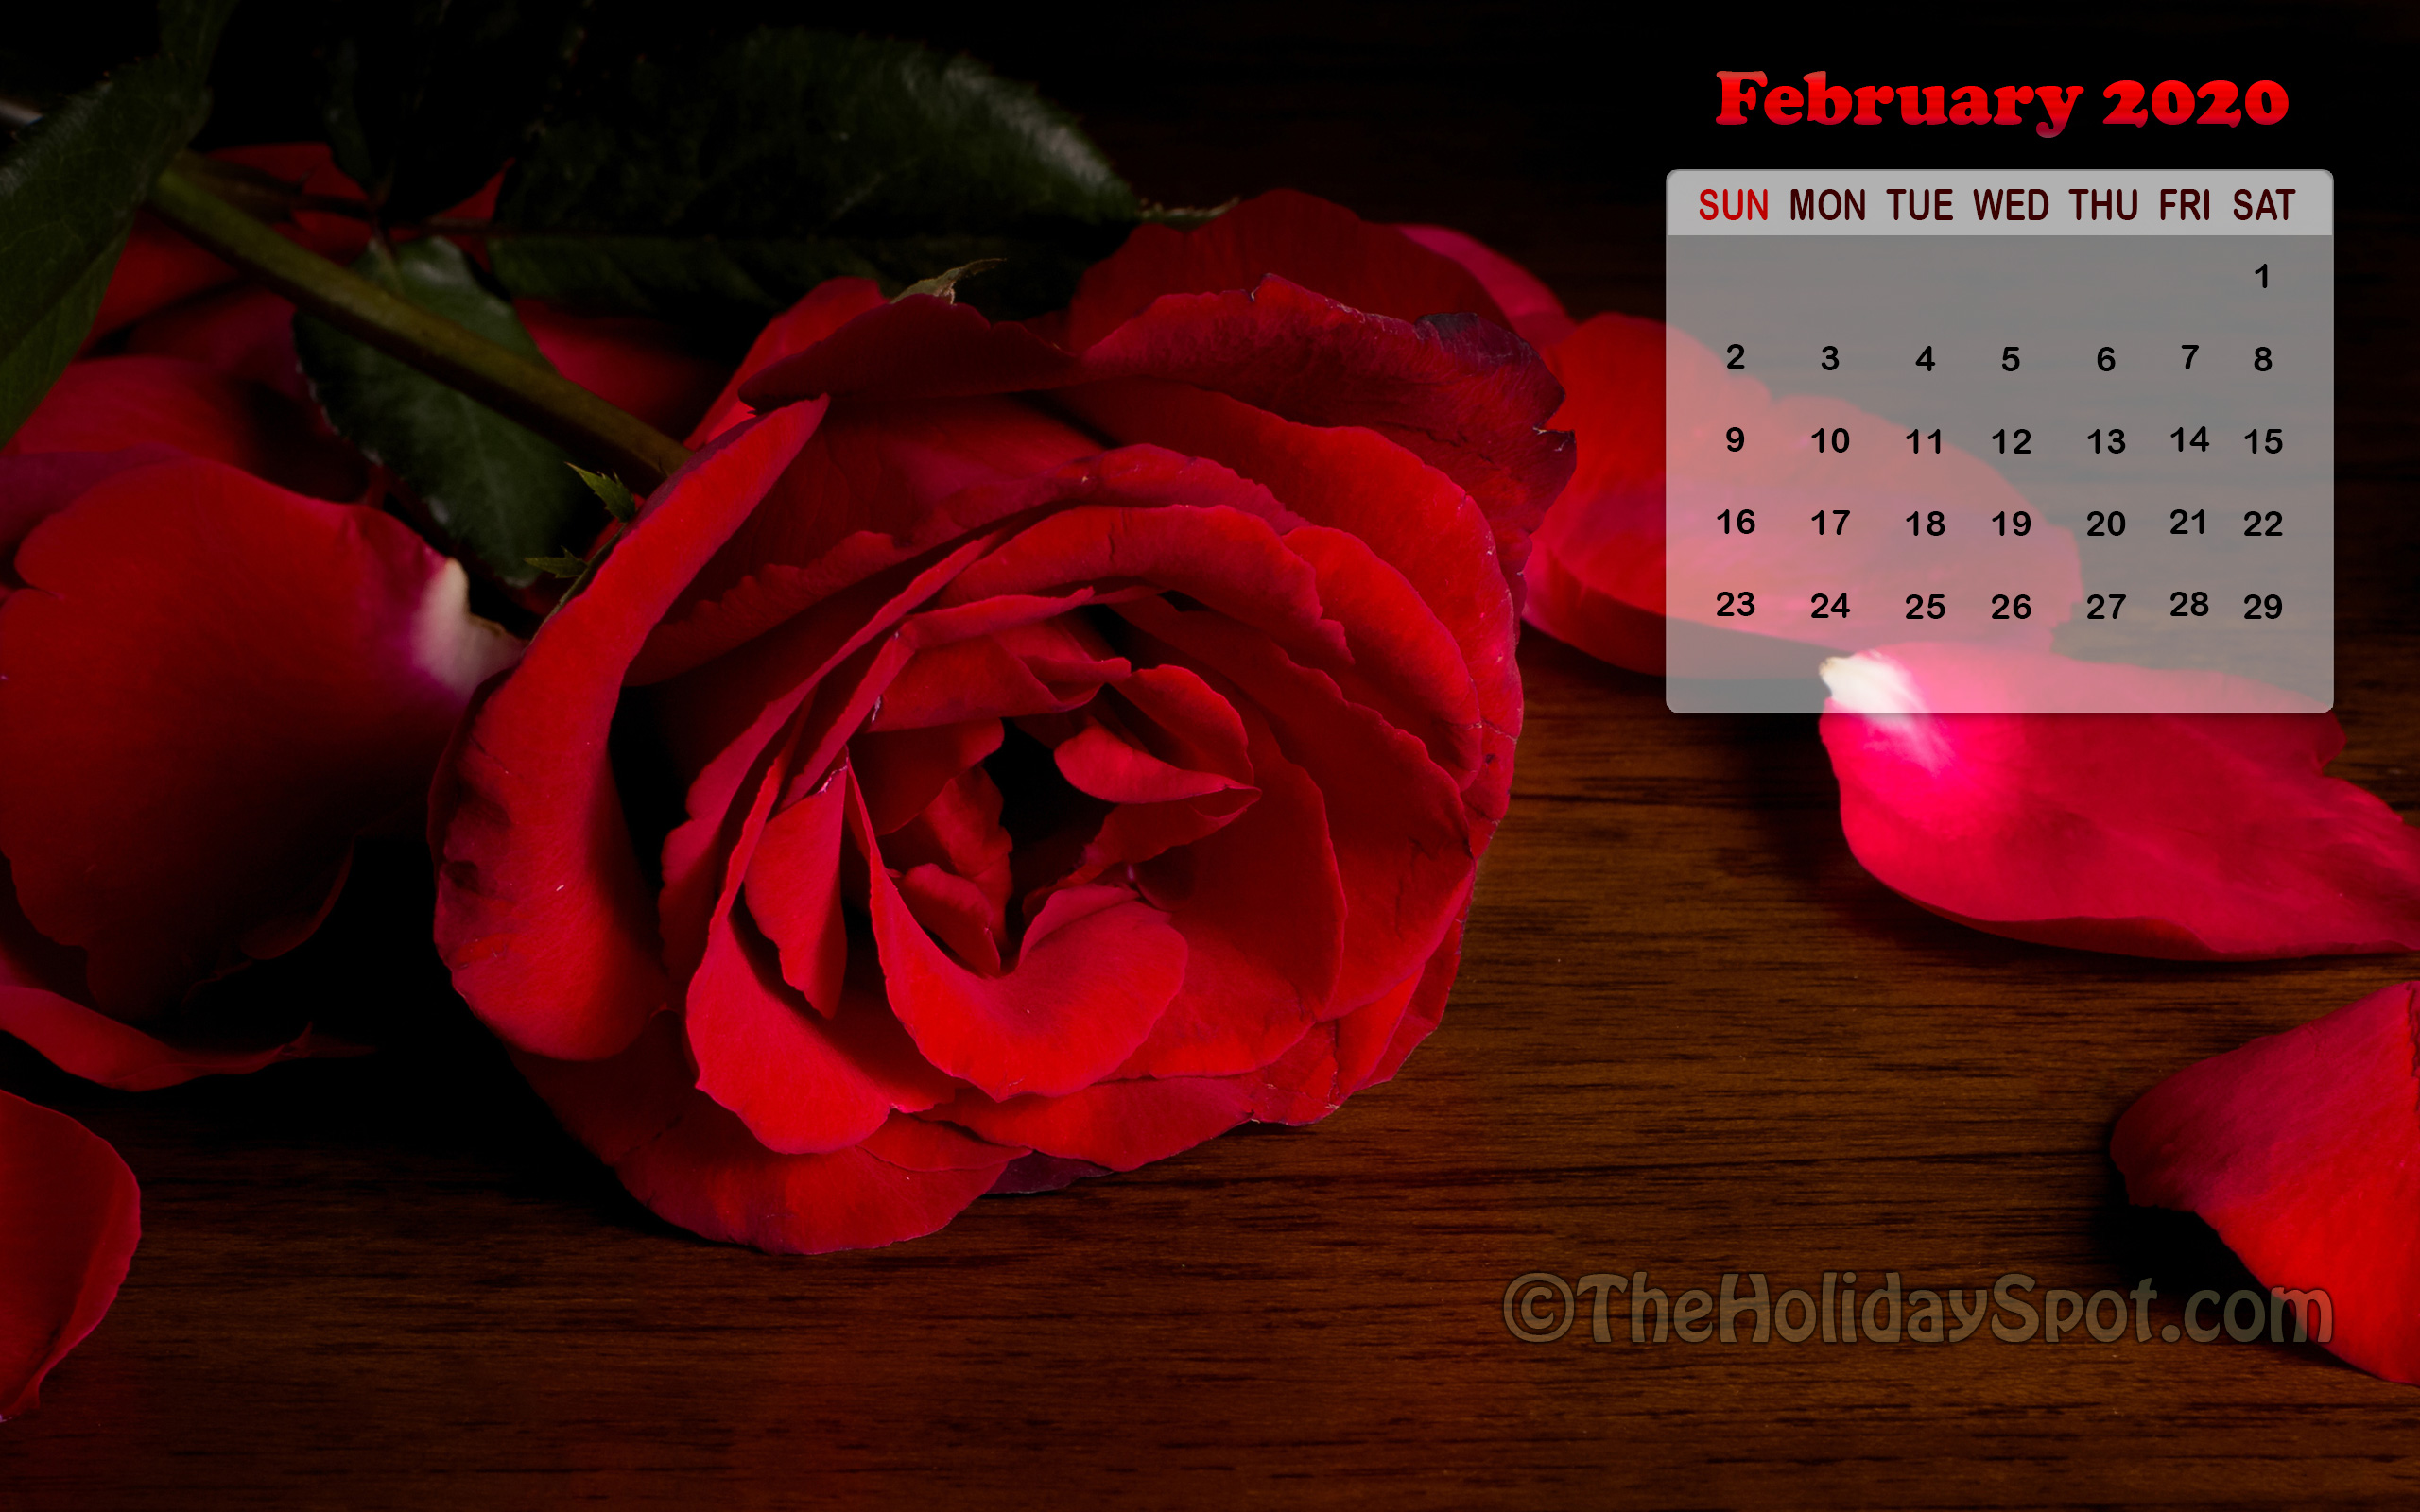 Month Wise Calendar Wallpapers Of 2020 1080p Hd Calendar Wallpapers